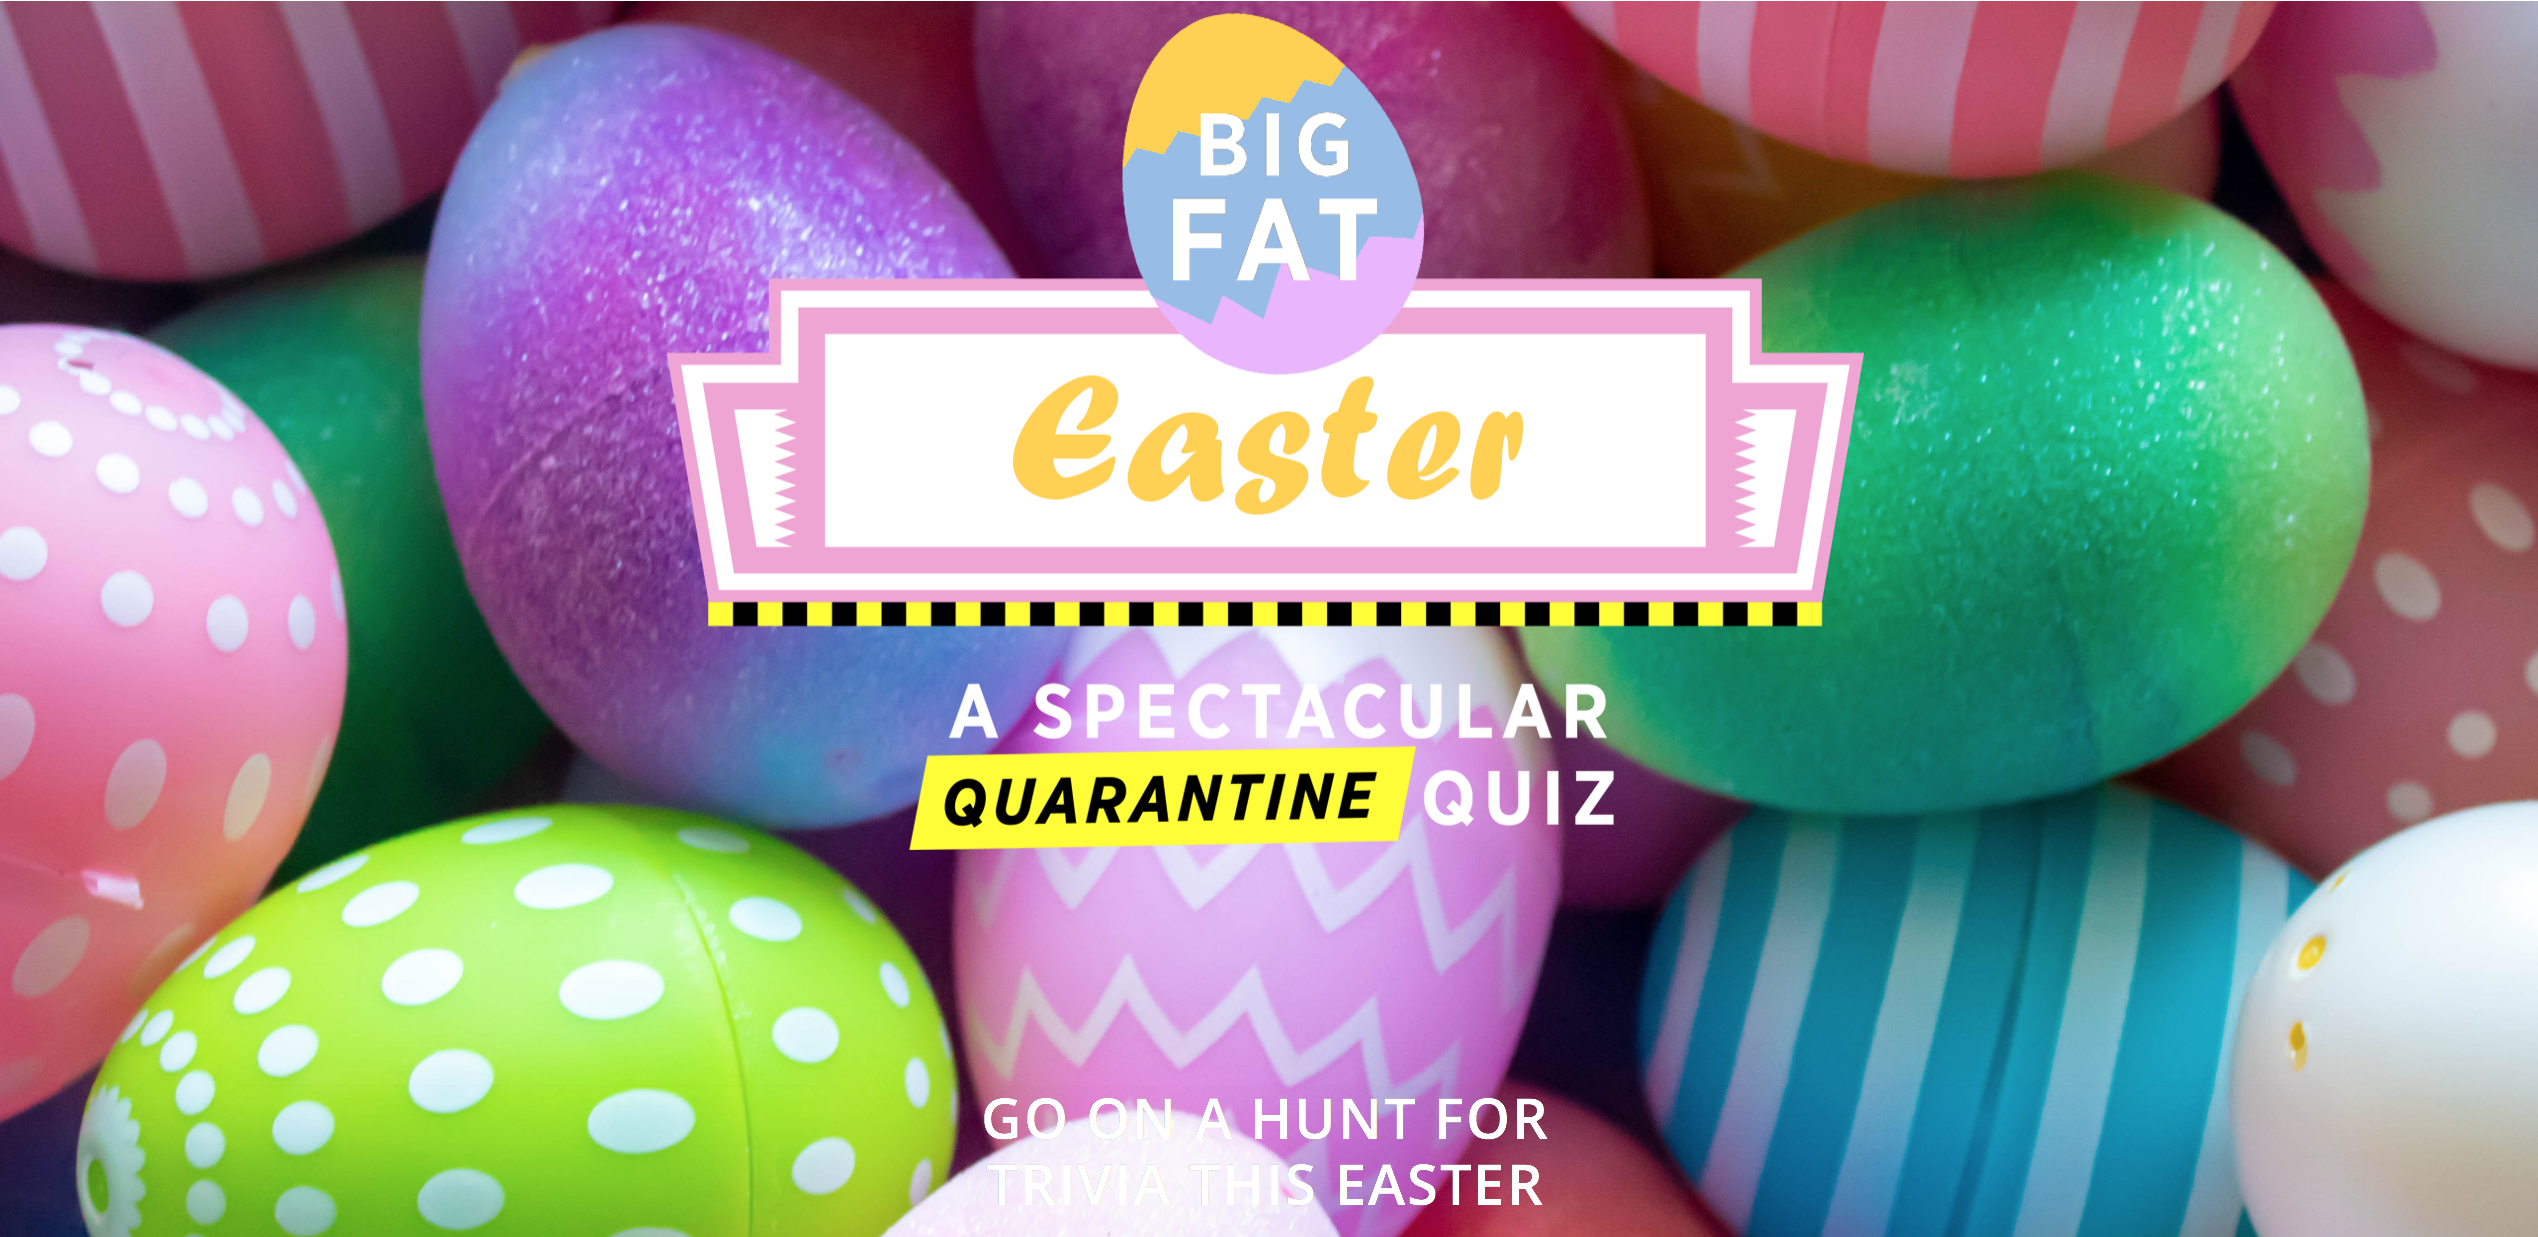 7 online quizzes to get involved with while under lockdown this Easter weekend